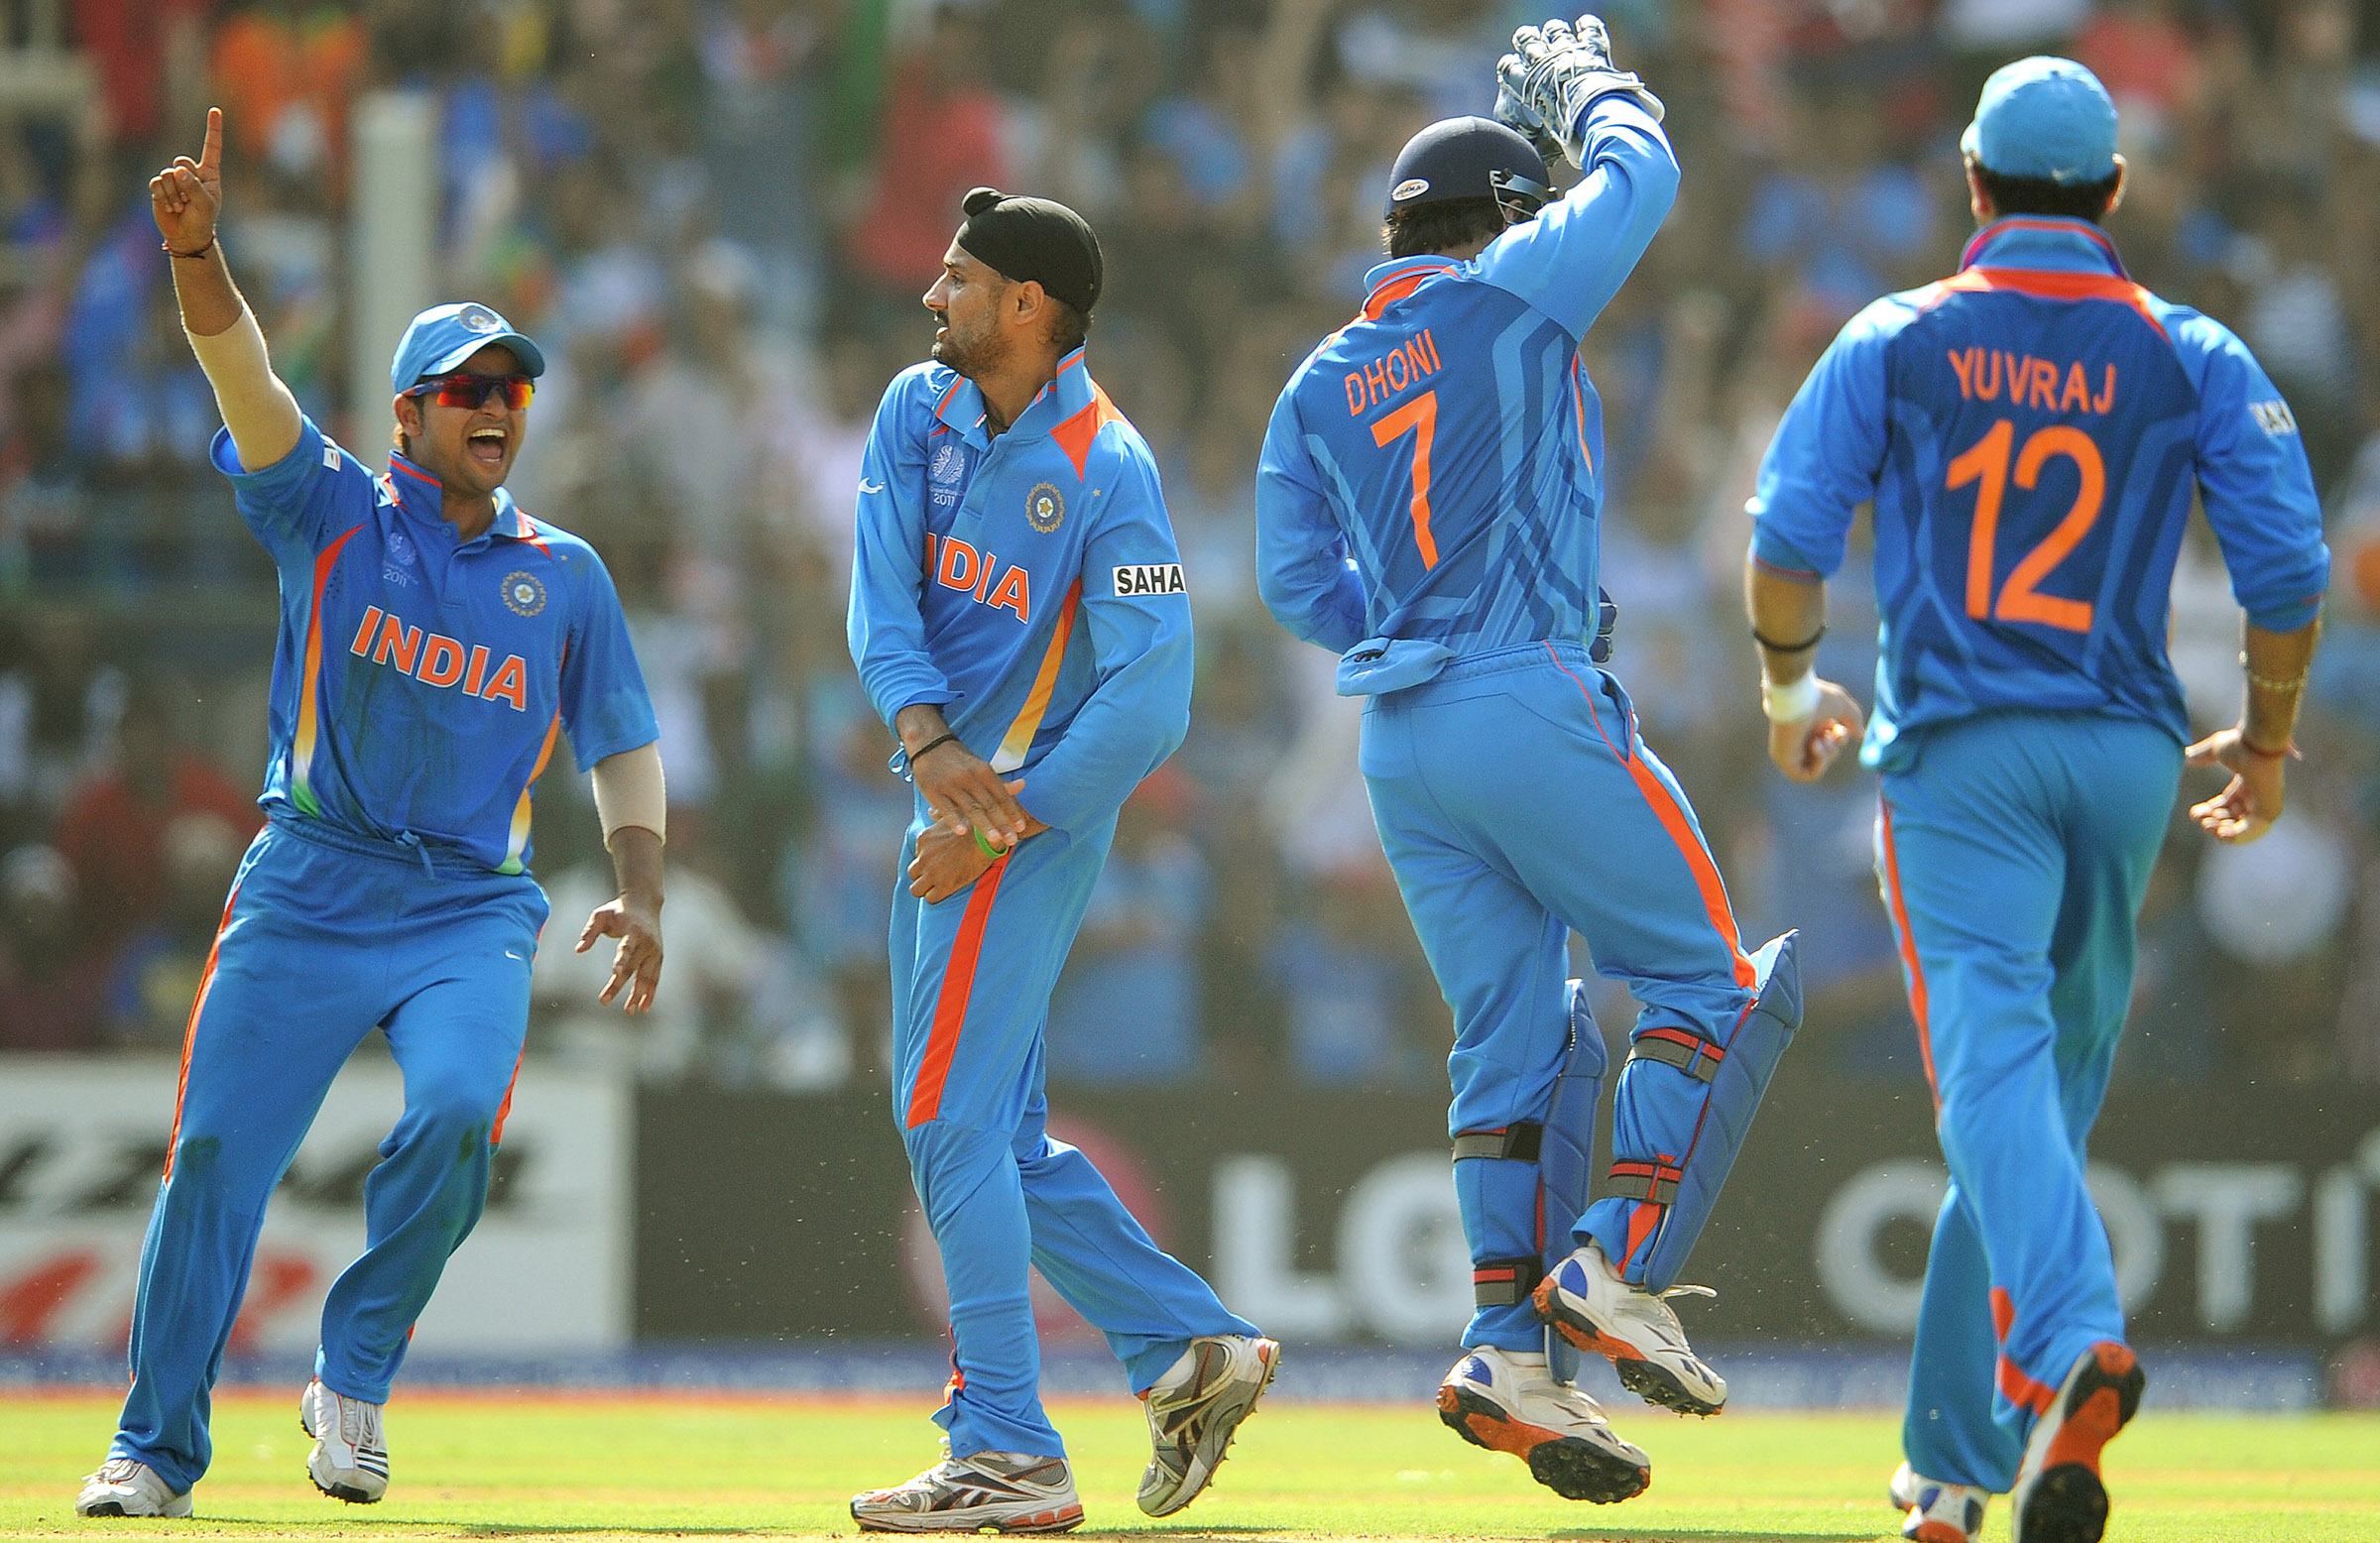 Raina, Harbhajan Singh, Dhoni and Yuvraj at the 2011 World Cup // Getty